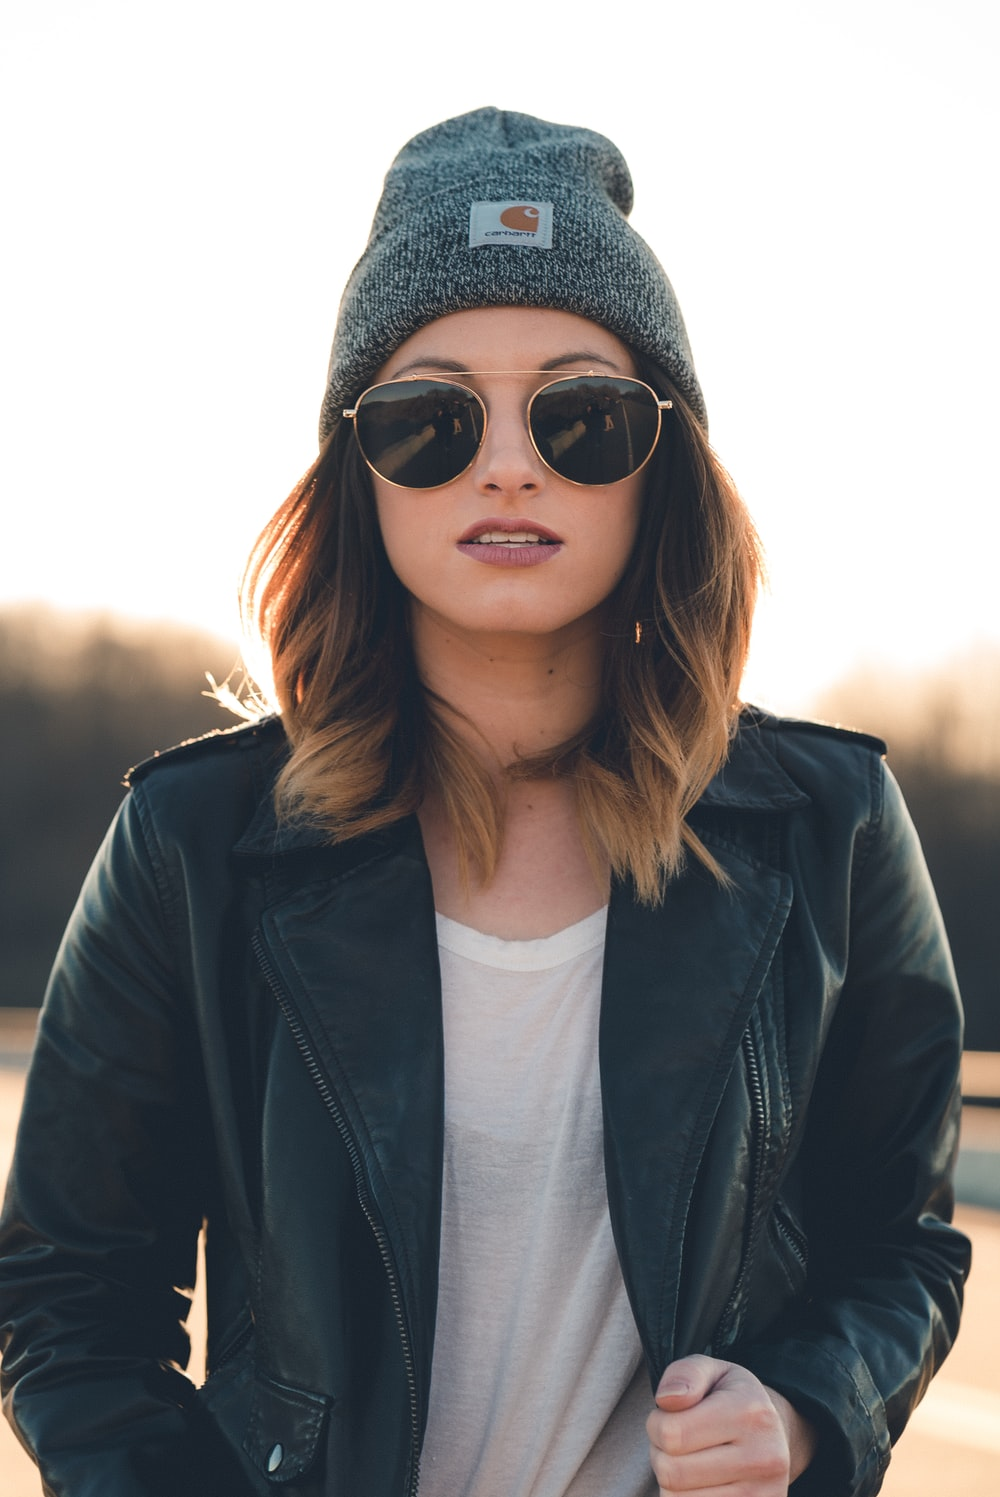 woman in black leather jacket wearing black sunglasses and gray knit cap